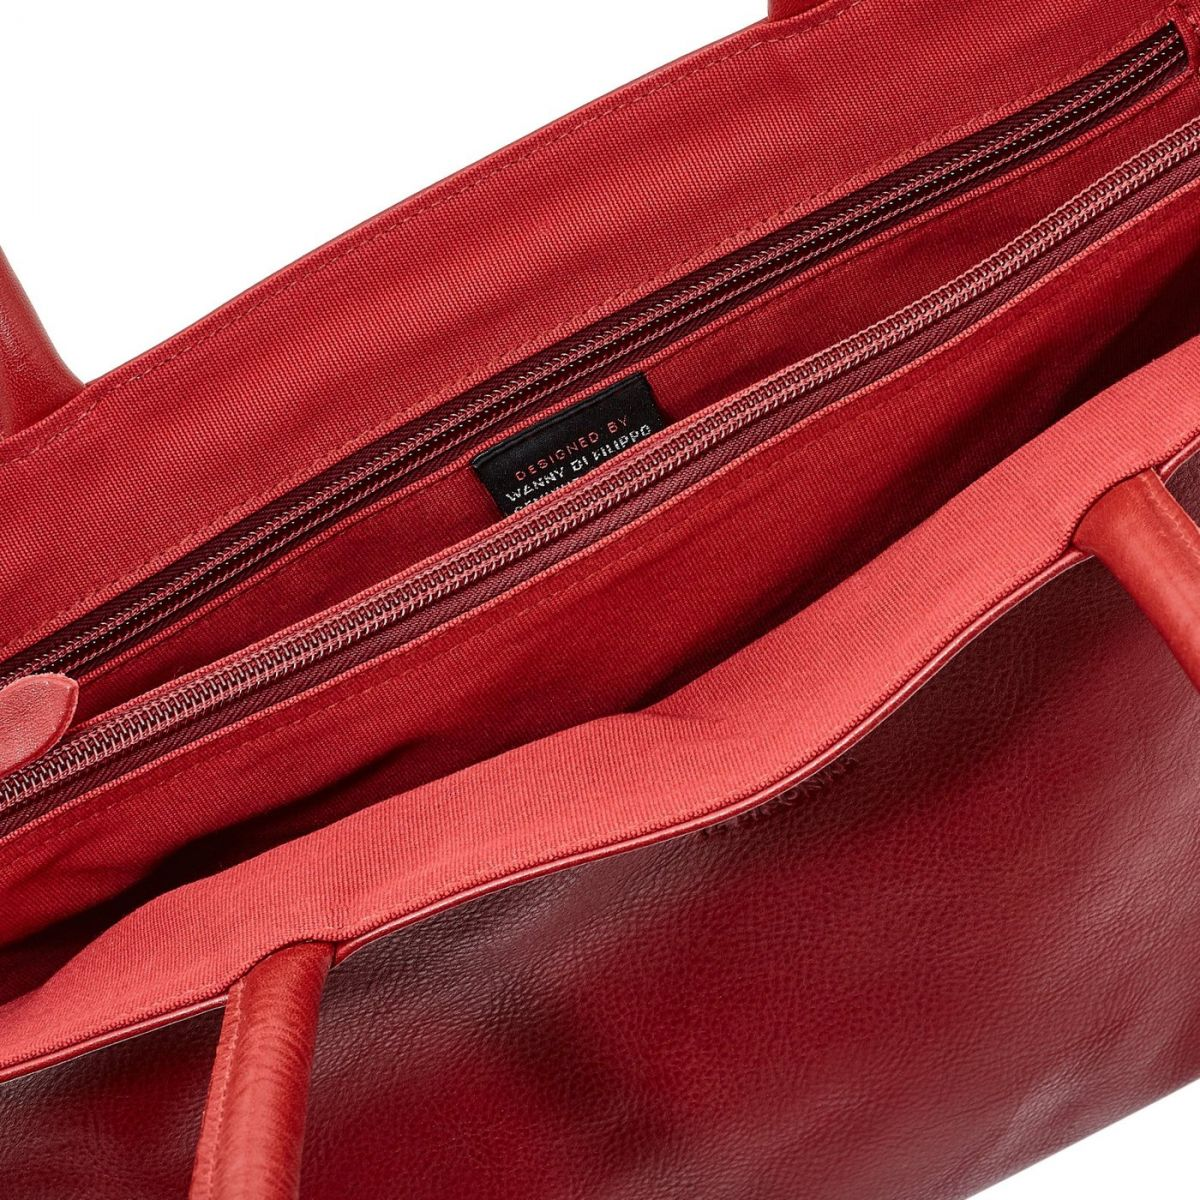 Women's Shoulder Bag in Cowhide Double Leather BSH007 color Red | Details